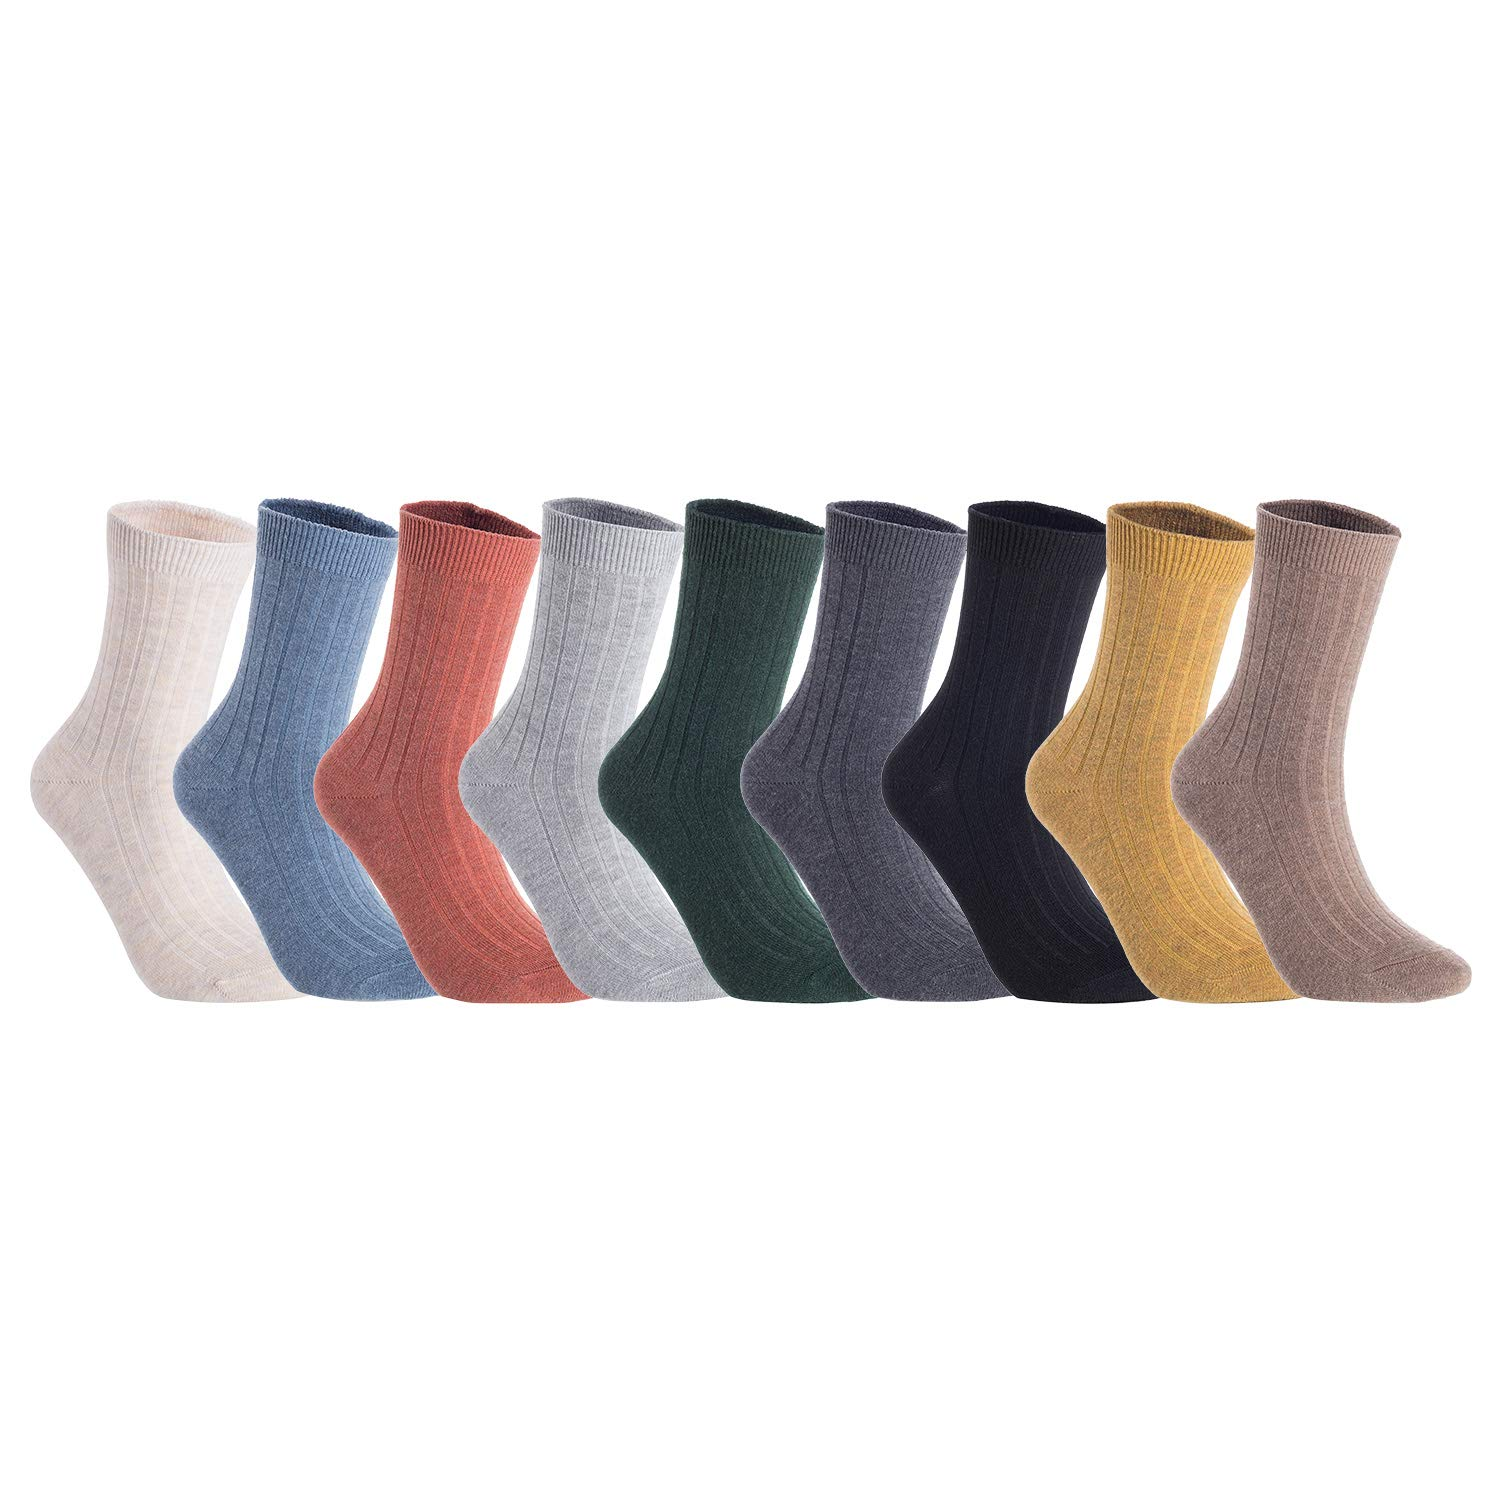 (Assorted) AATMart Women's 5 Pairs Pack Fashion Soft Wool Crew Socks Size 69 HR1690